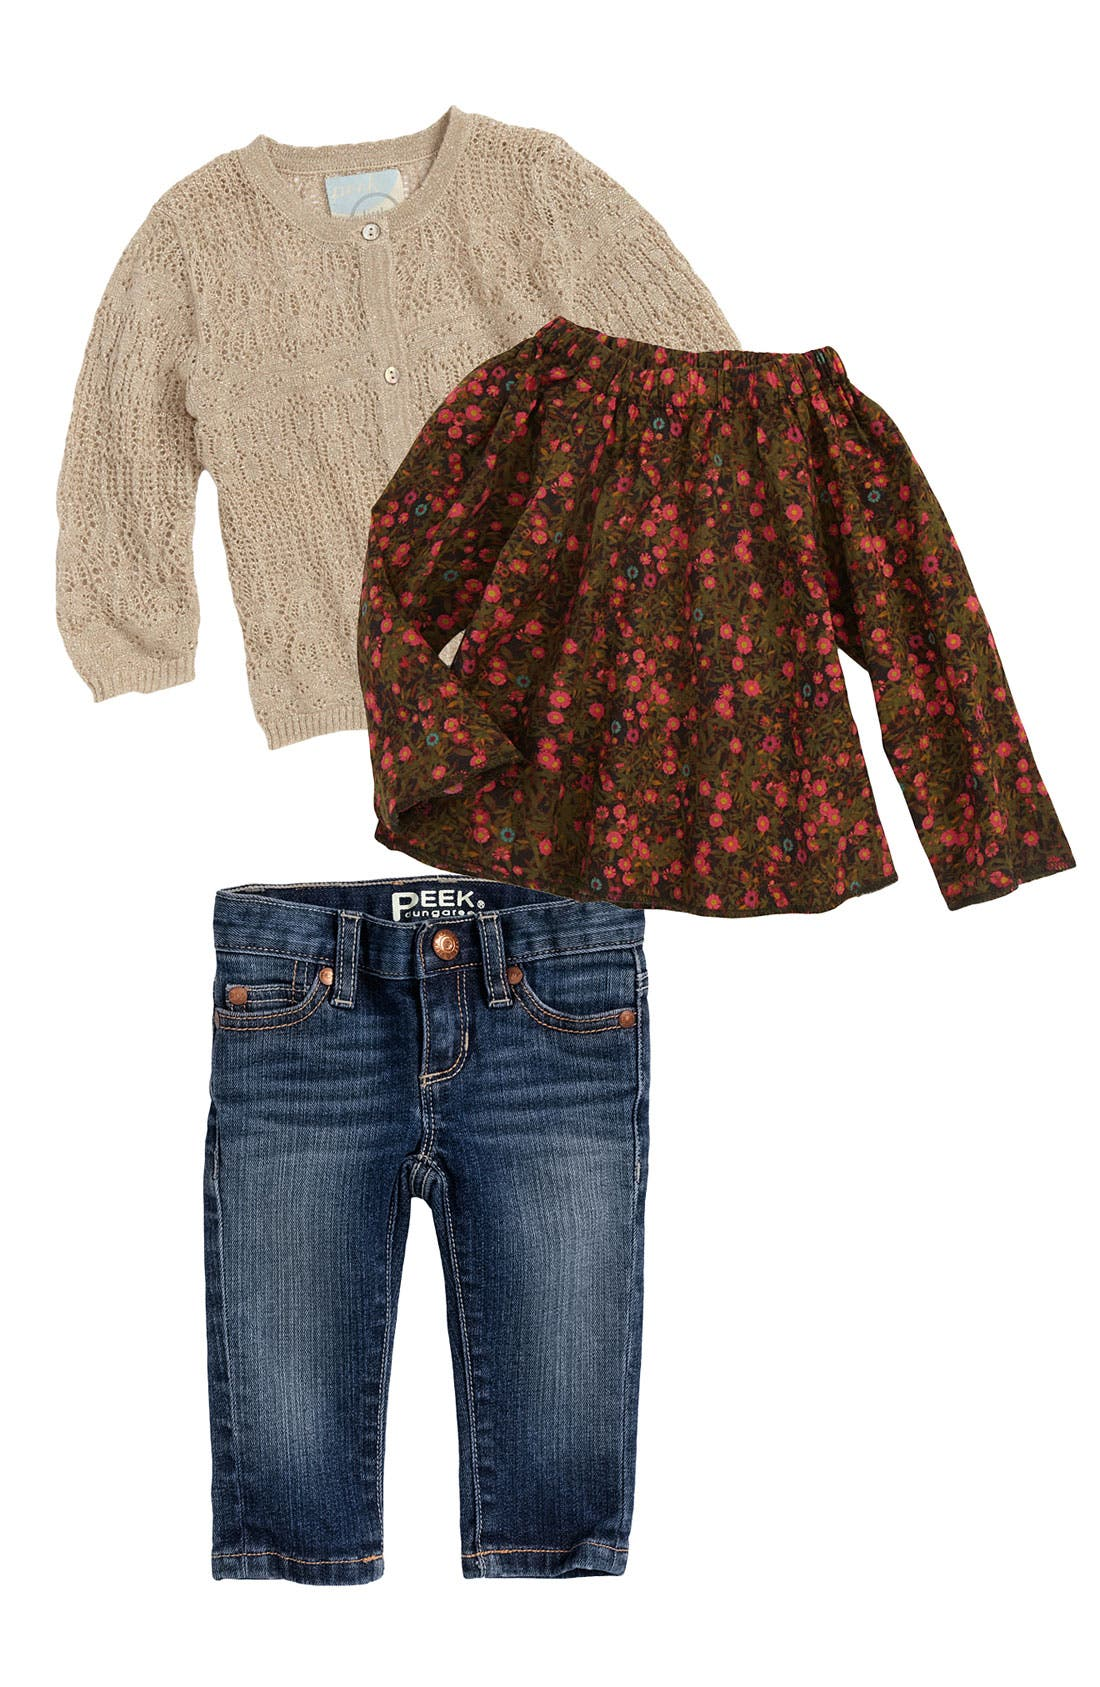 Alternate Image 1 Selected - Peek Woven Top, Cardigan & Skinny Jeans (Infant)